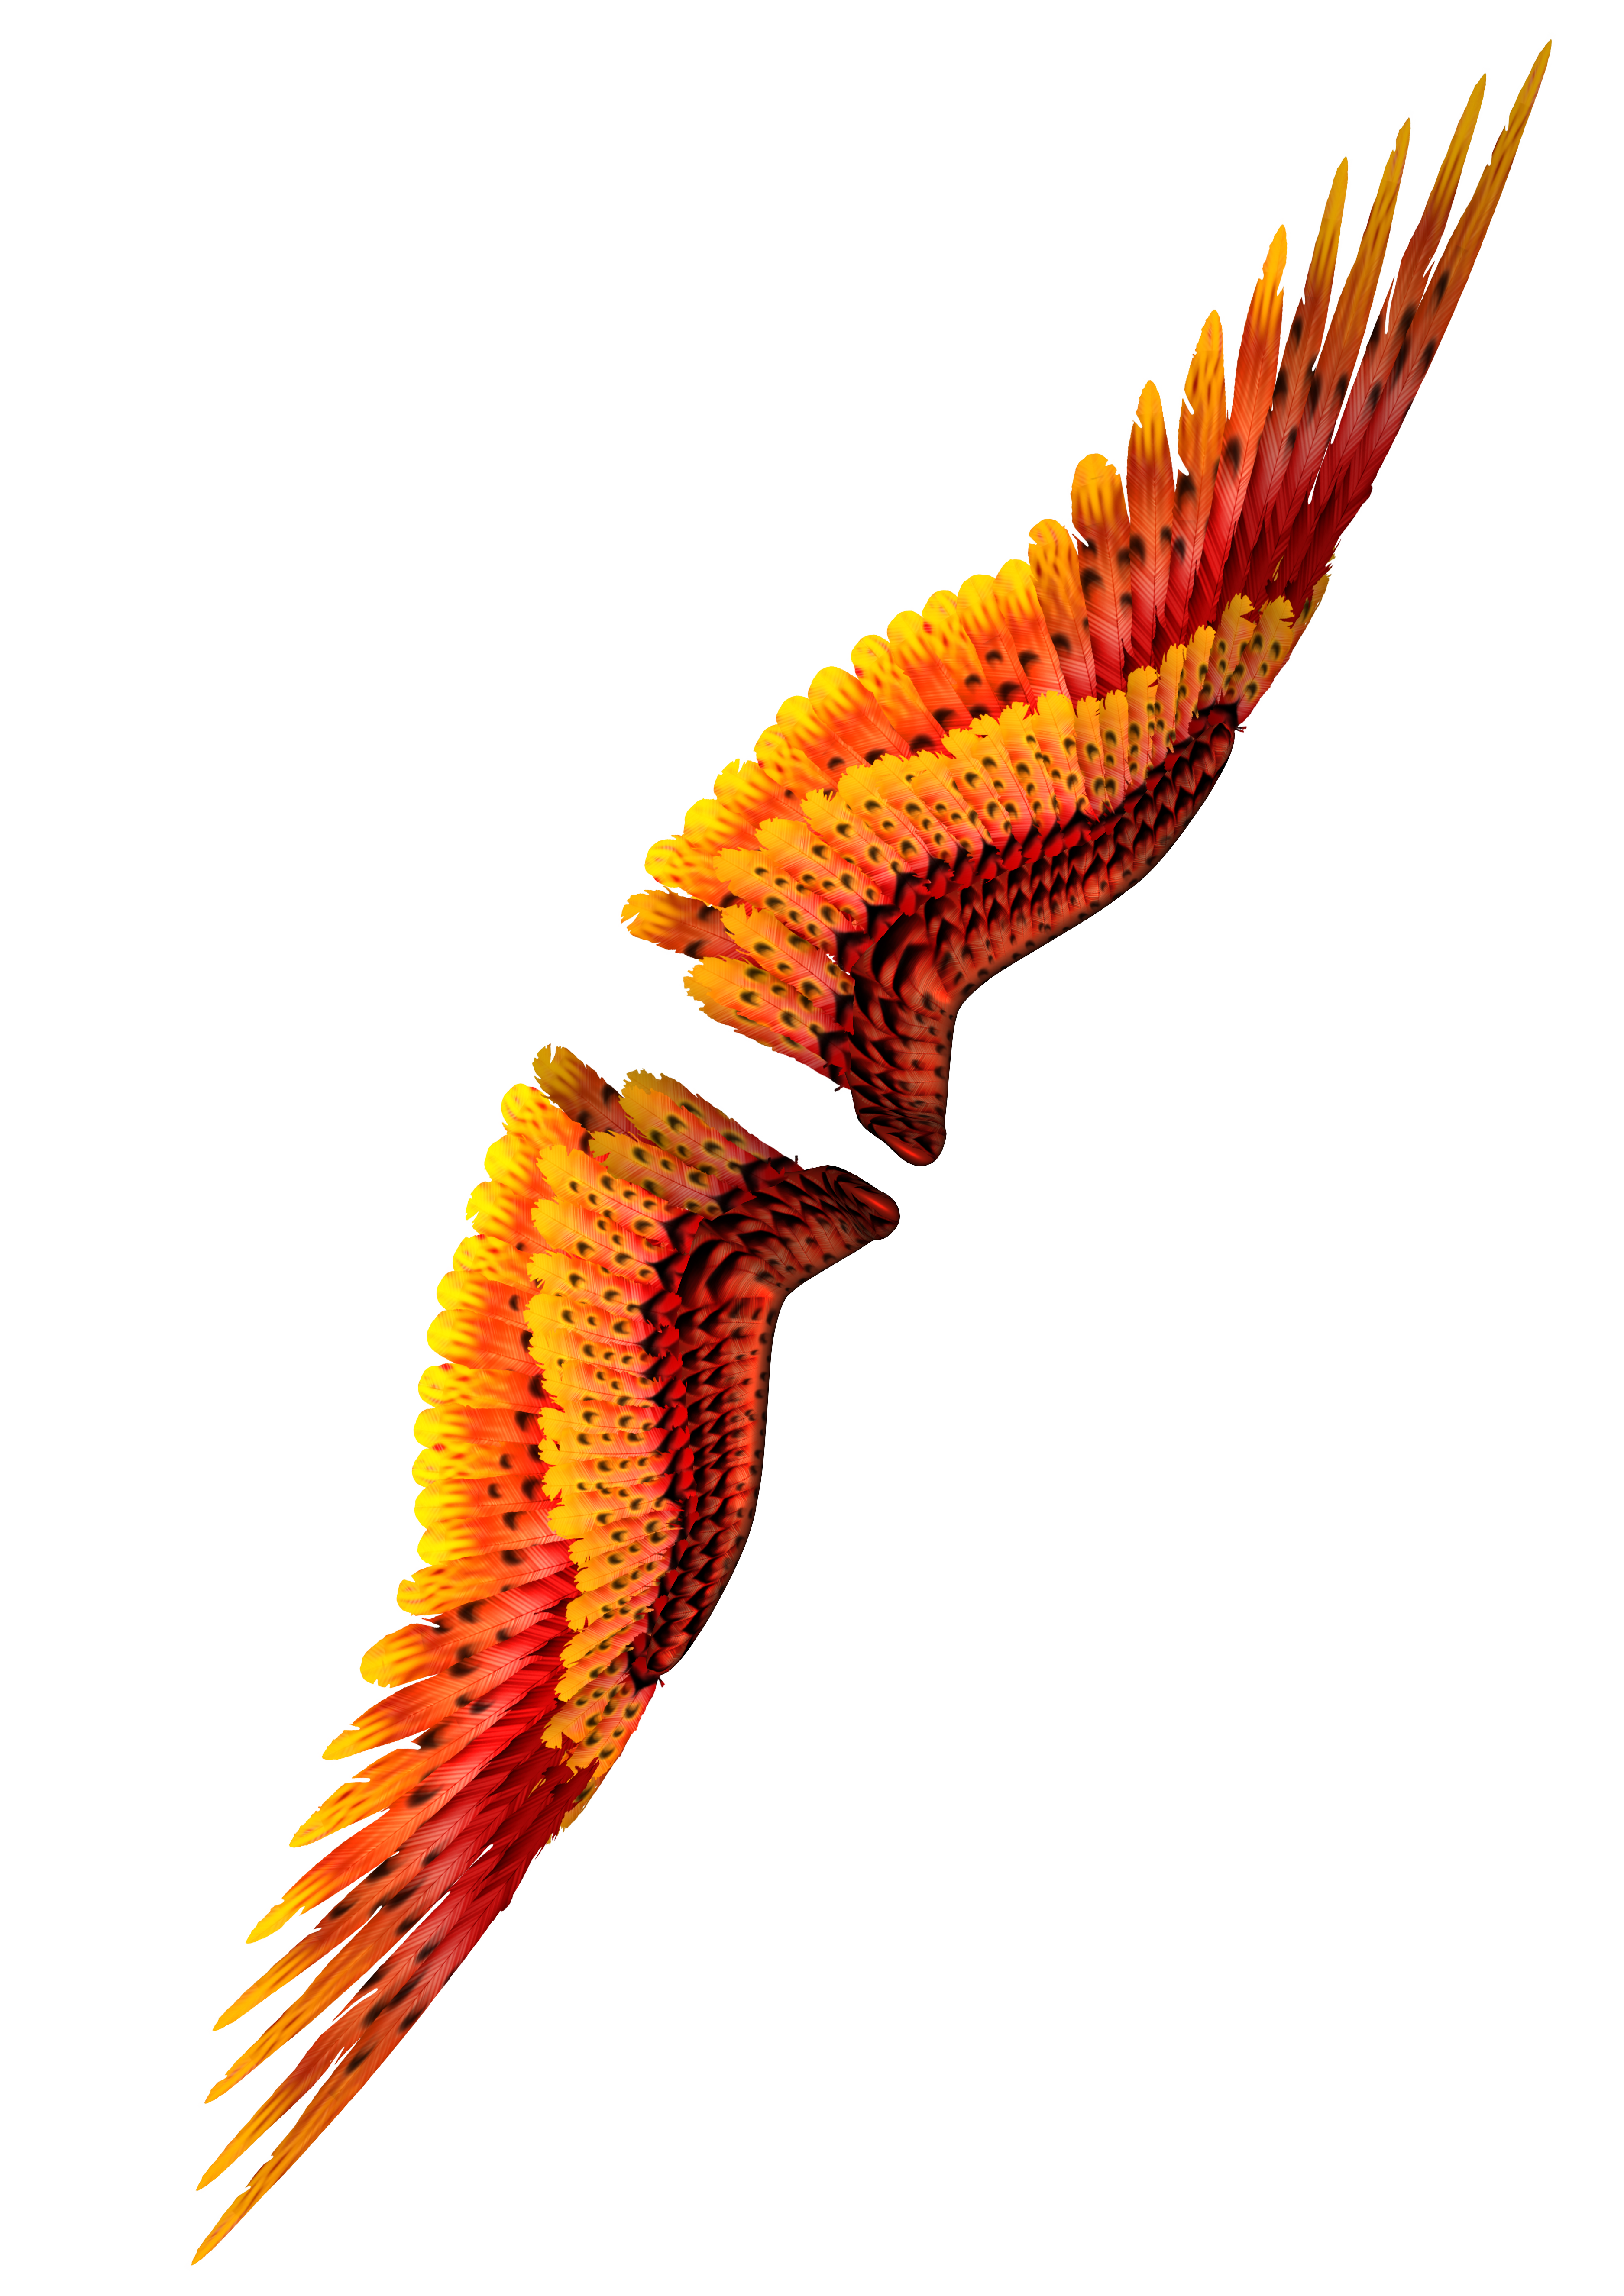 Wings 3, 3d, Feather, Render, Wings, HQ Photo